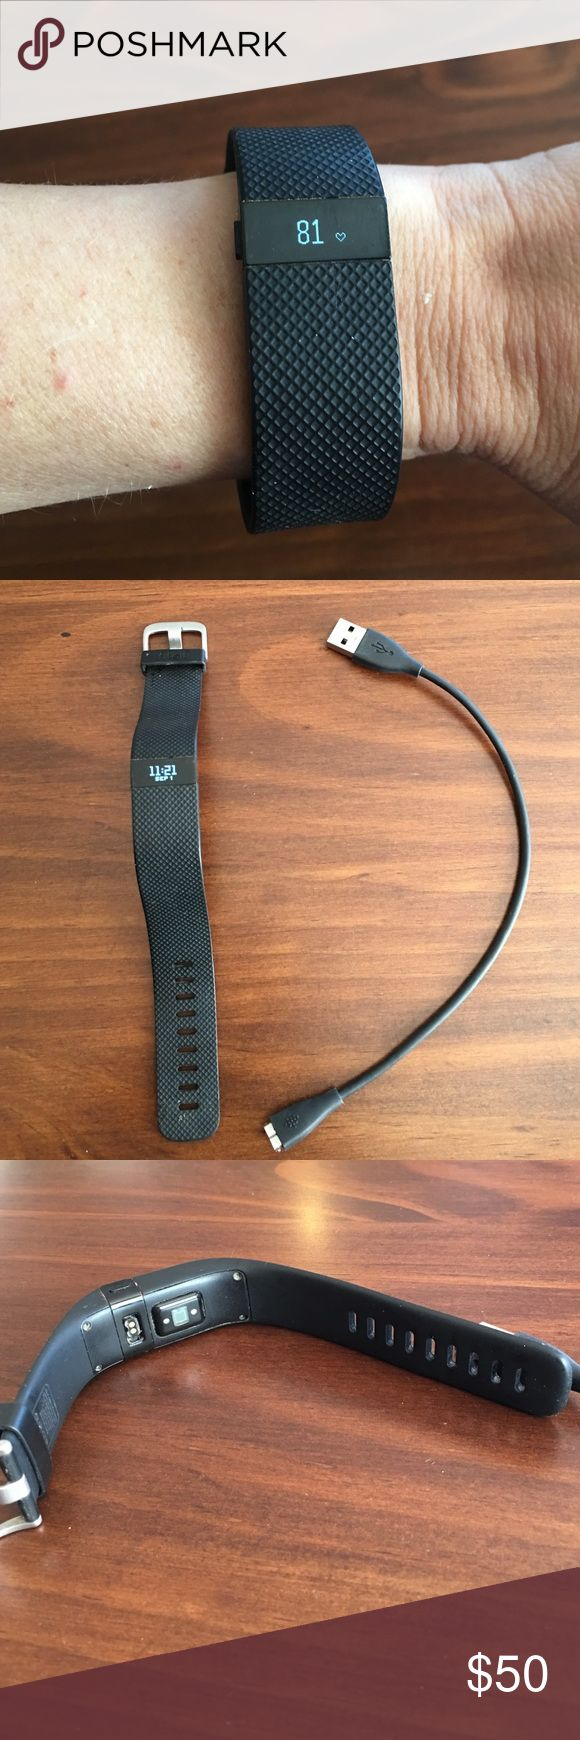 Fitbit Charge HR Black - Small Black Fitbit Charge HR Small. Works great. I just use my Apple Watch now. Date and time are not correct due to not syncing in awhile. Reasonable offers welcome. Fitbit Accessories